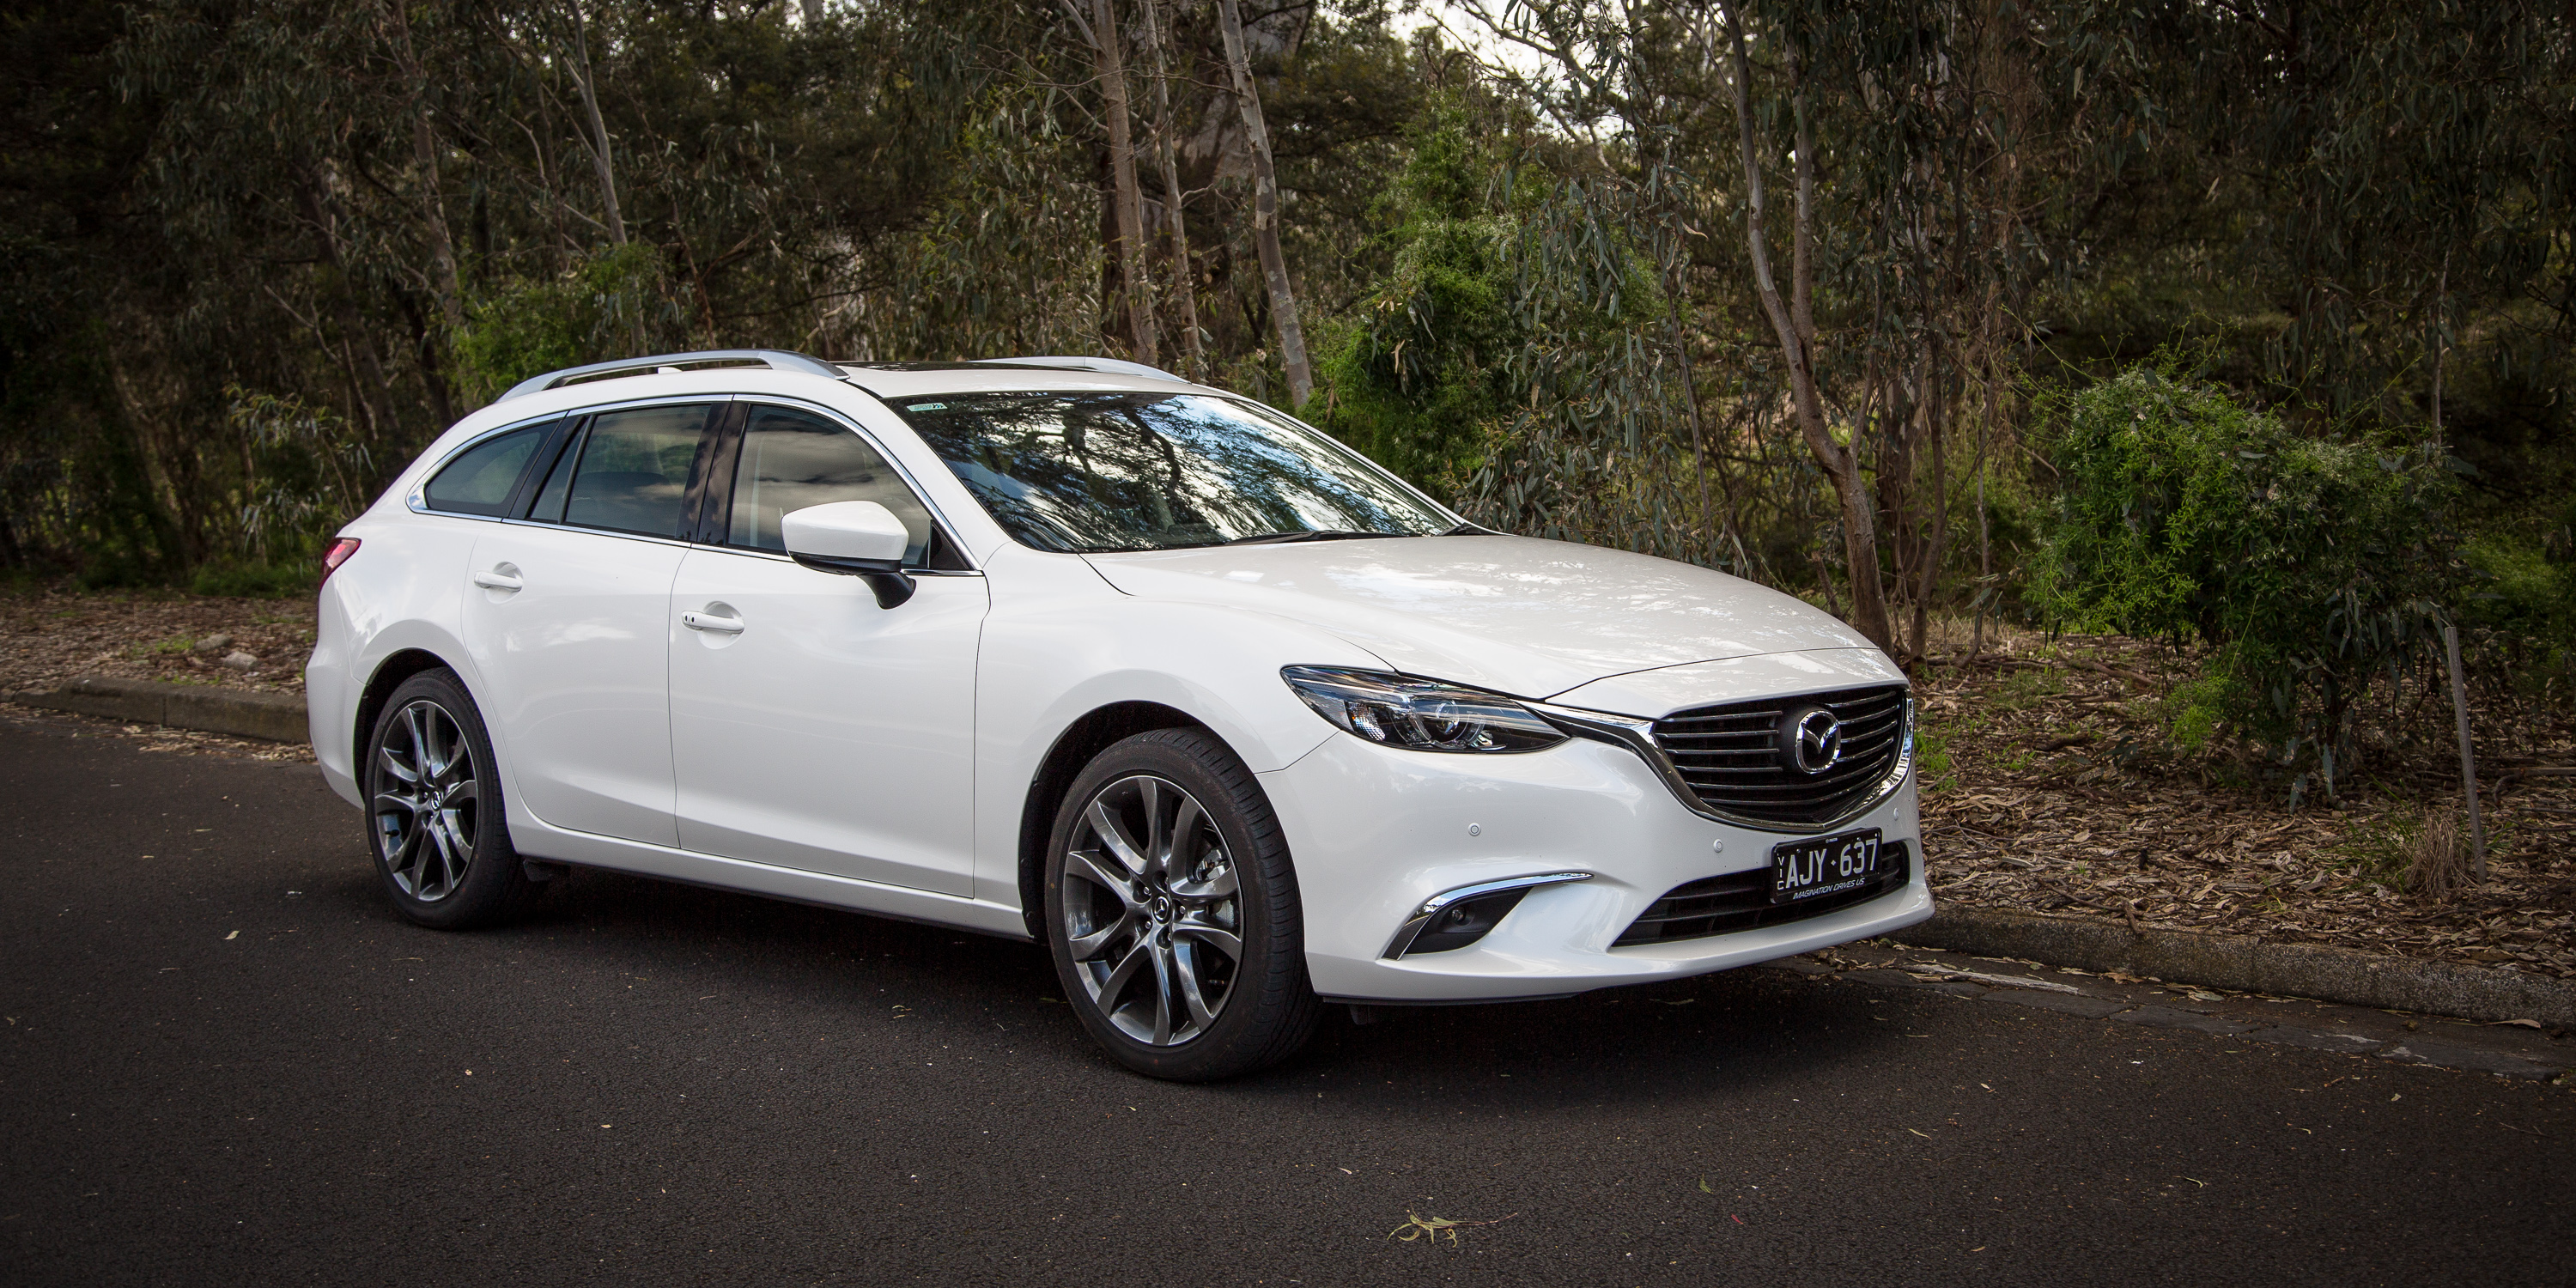 2017 mazda 6 gt wagon review caradvice. Black Bedroom Furniture Sets. Home Design Ideas